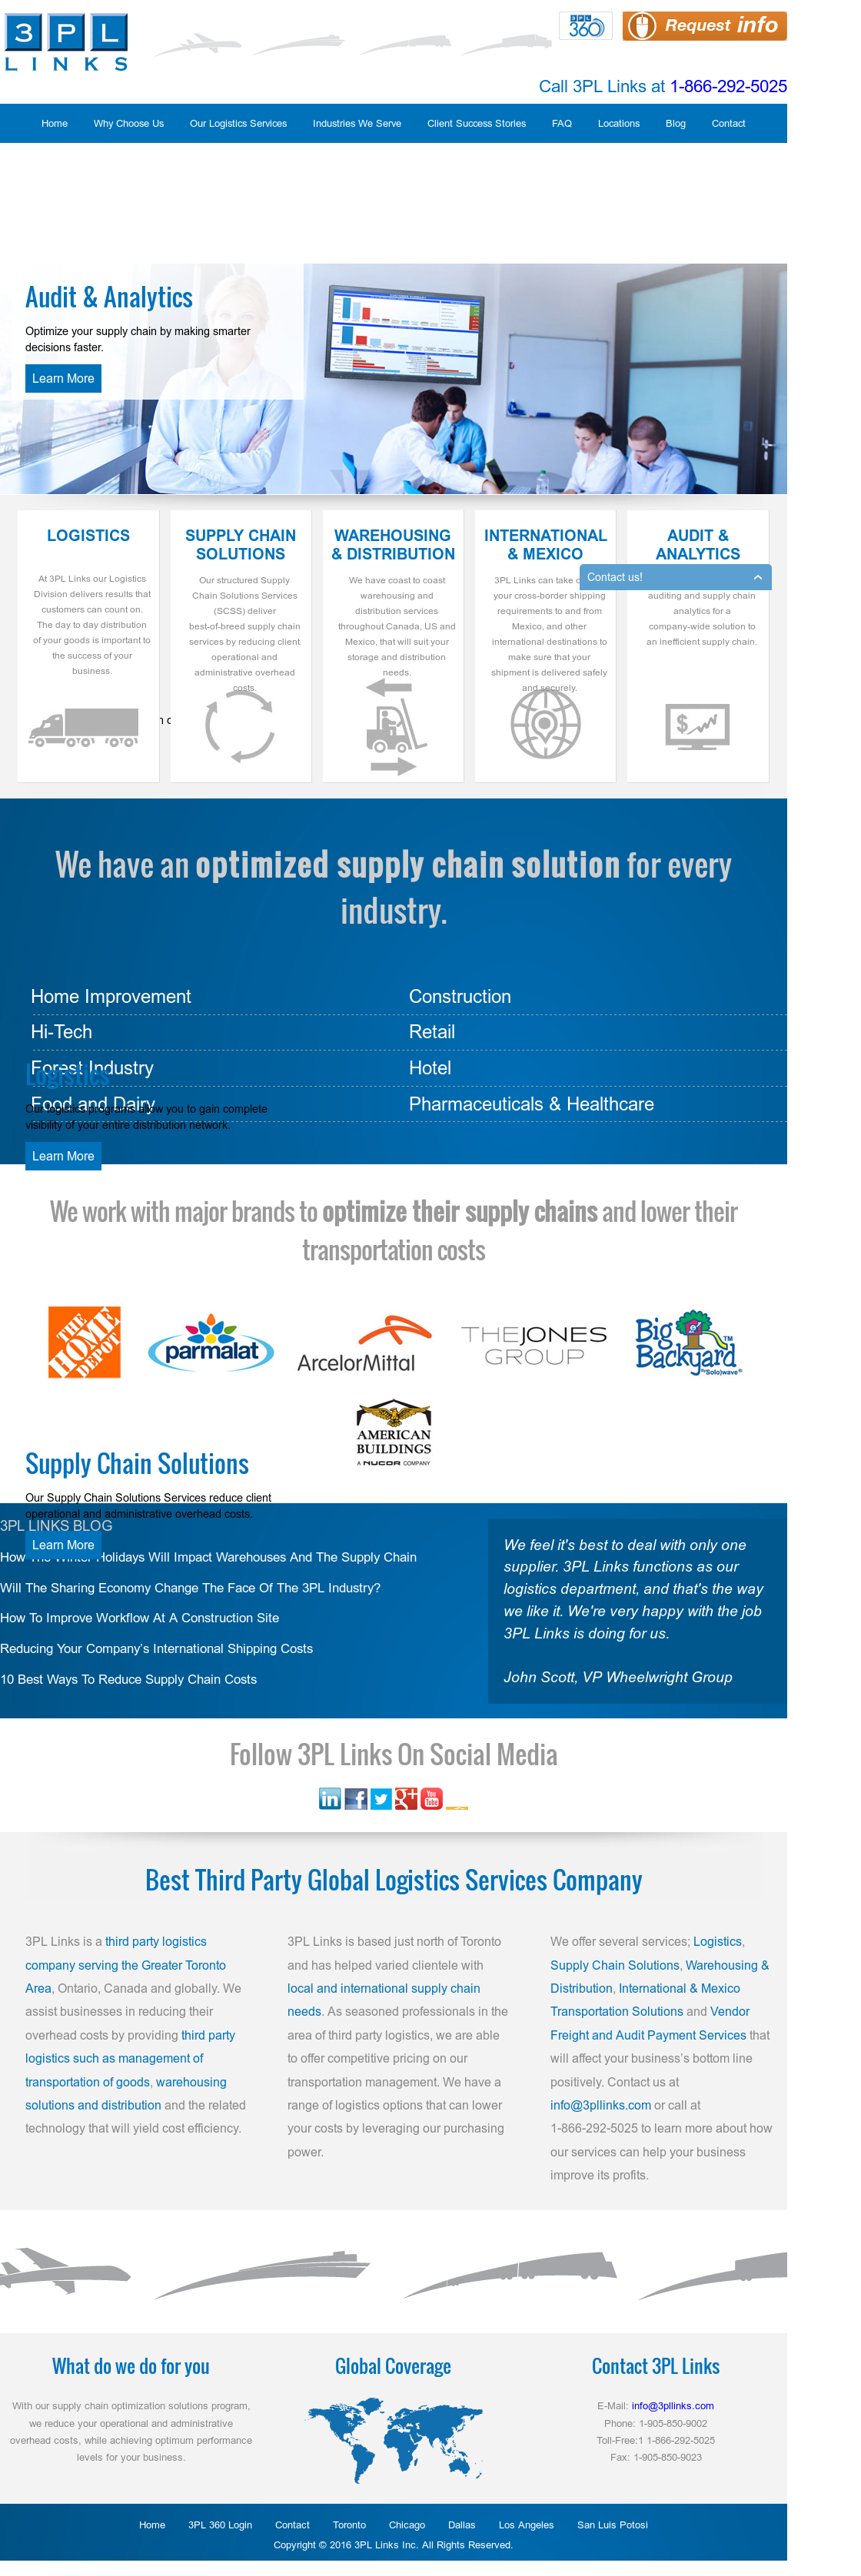 3PL Links Competitors, Revenue and Employees - Owler Company Profile